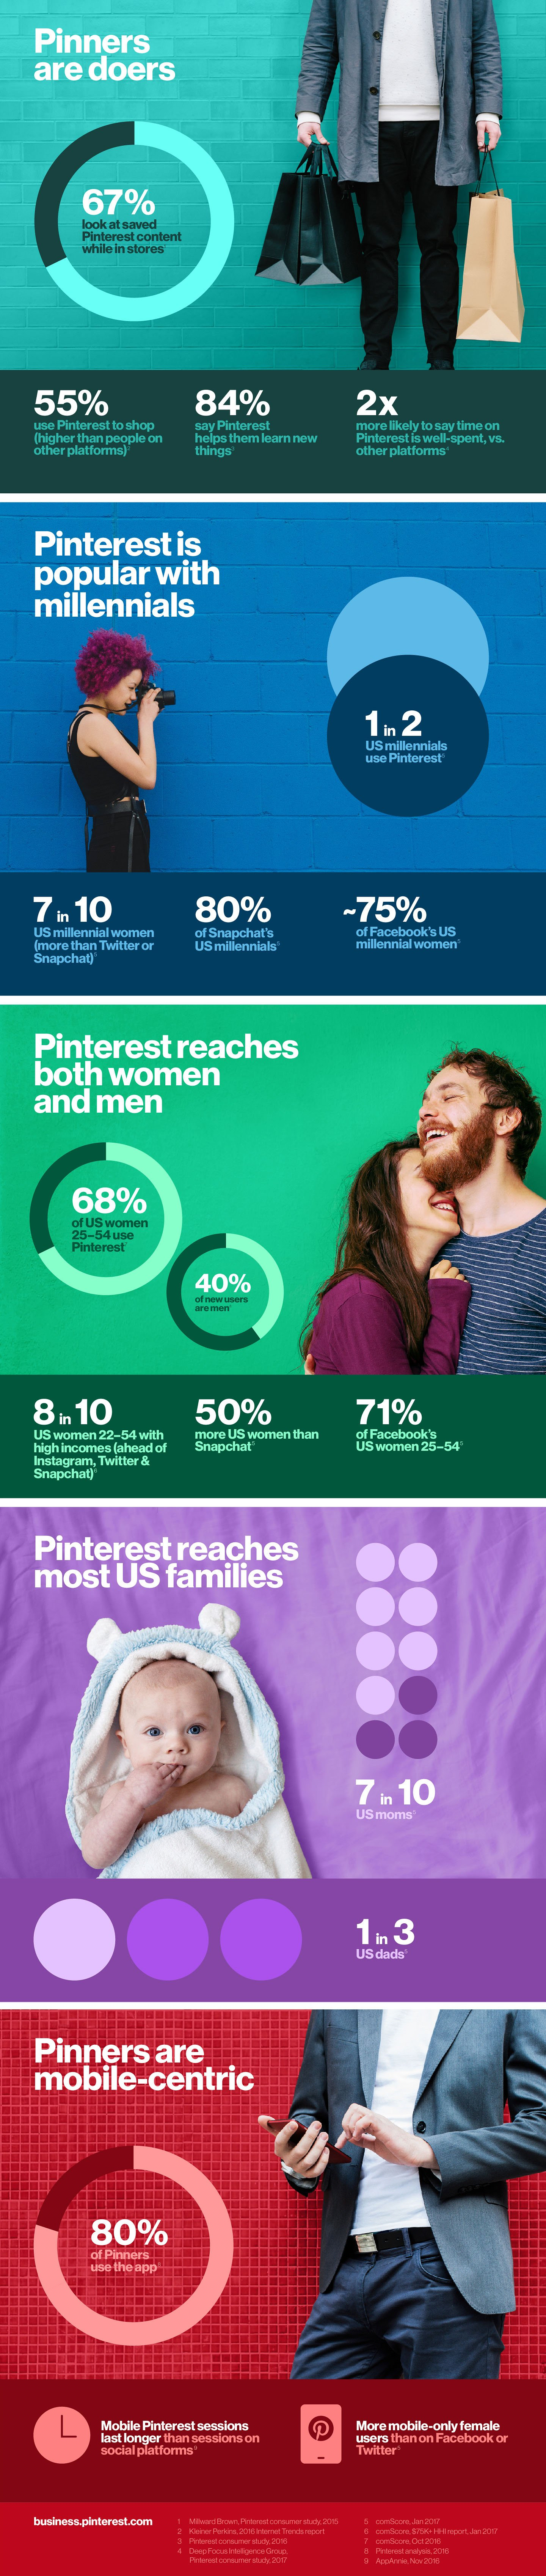 Pinterest Provides New Data on Who's Using the Platform [Infographic] | Social Media Today